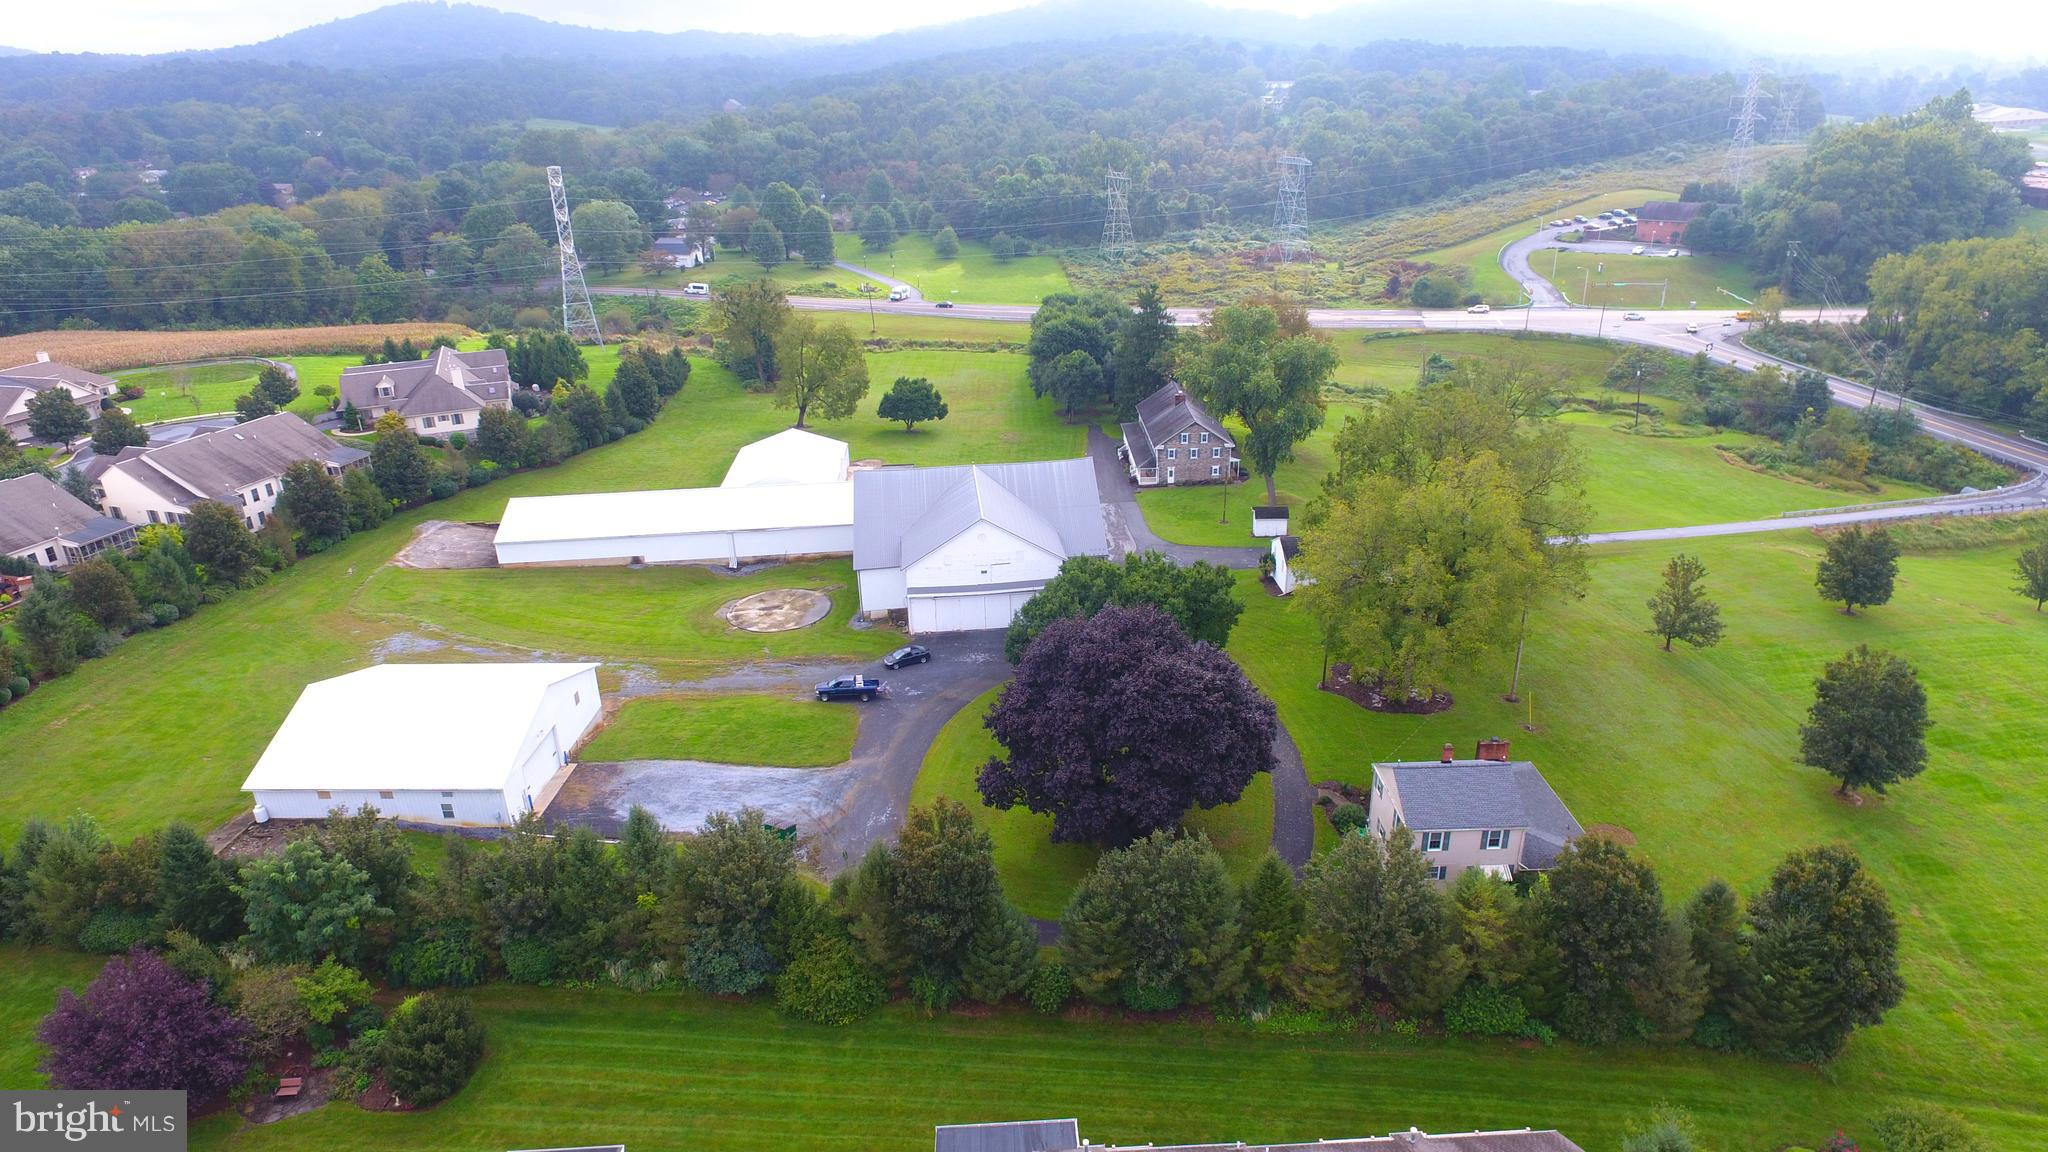 2177 SWATARA CREEK ROAD, HUMMELSTOWN, PA 17036